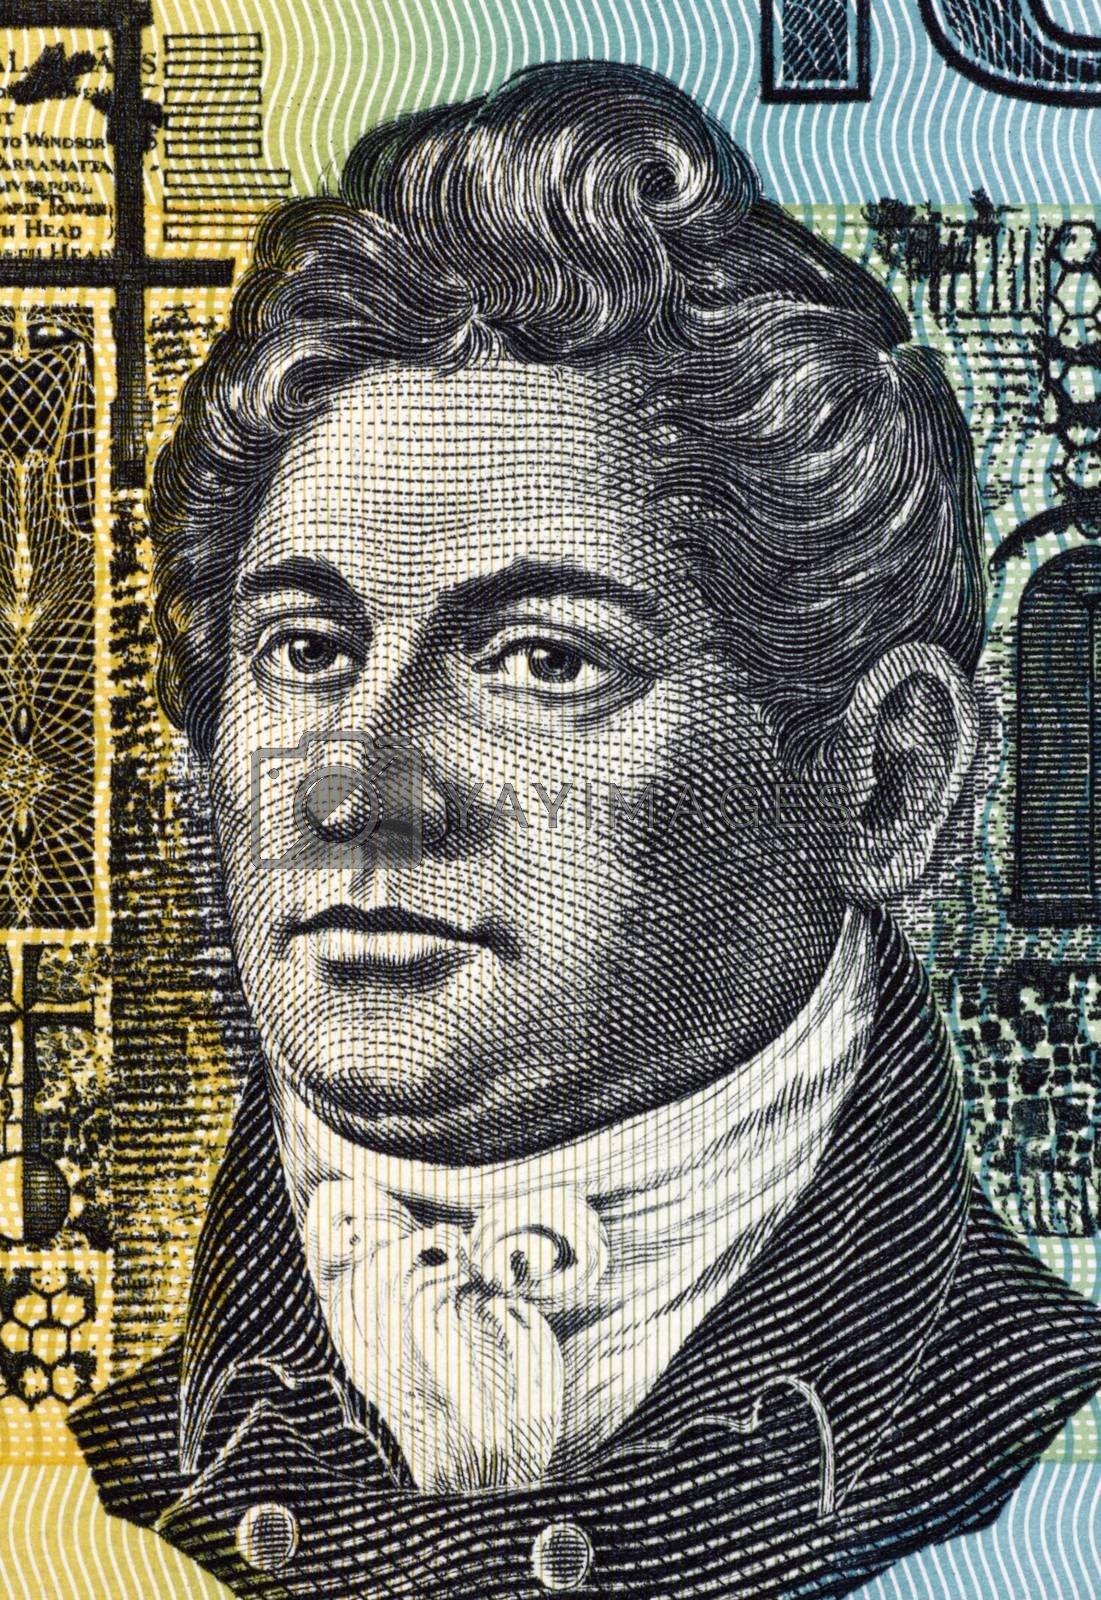 Francis Greenway (1777-1837) on 10 Dollars 1966 banknote from Australia. English-born architect who was transported to Australia for the crime of forgery.